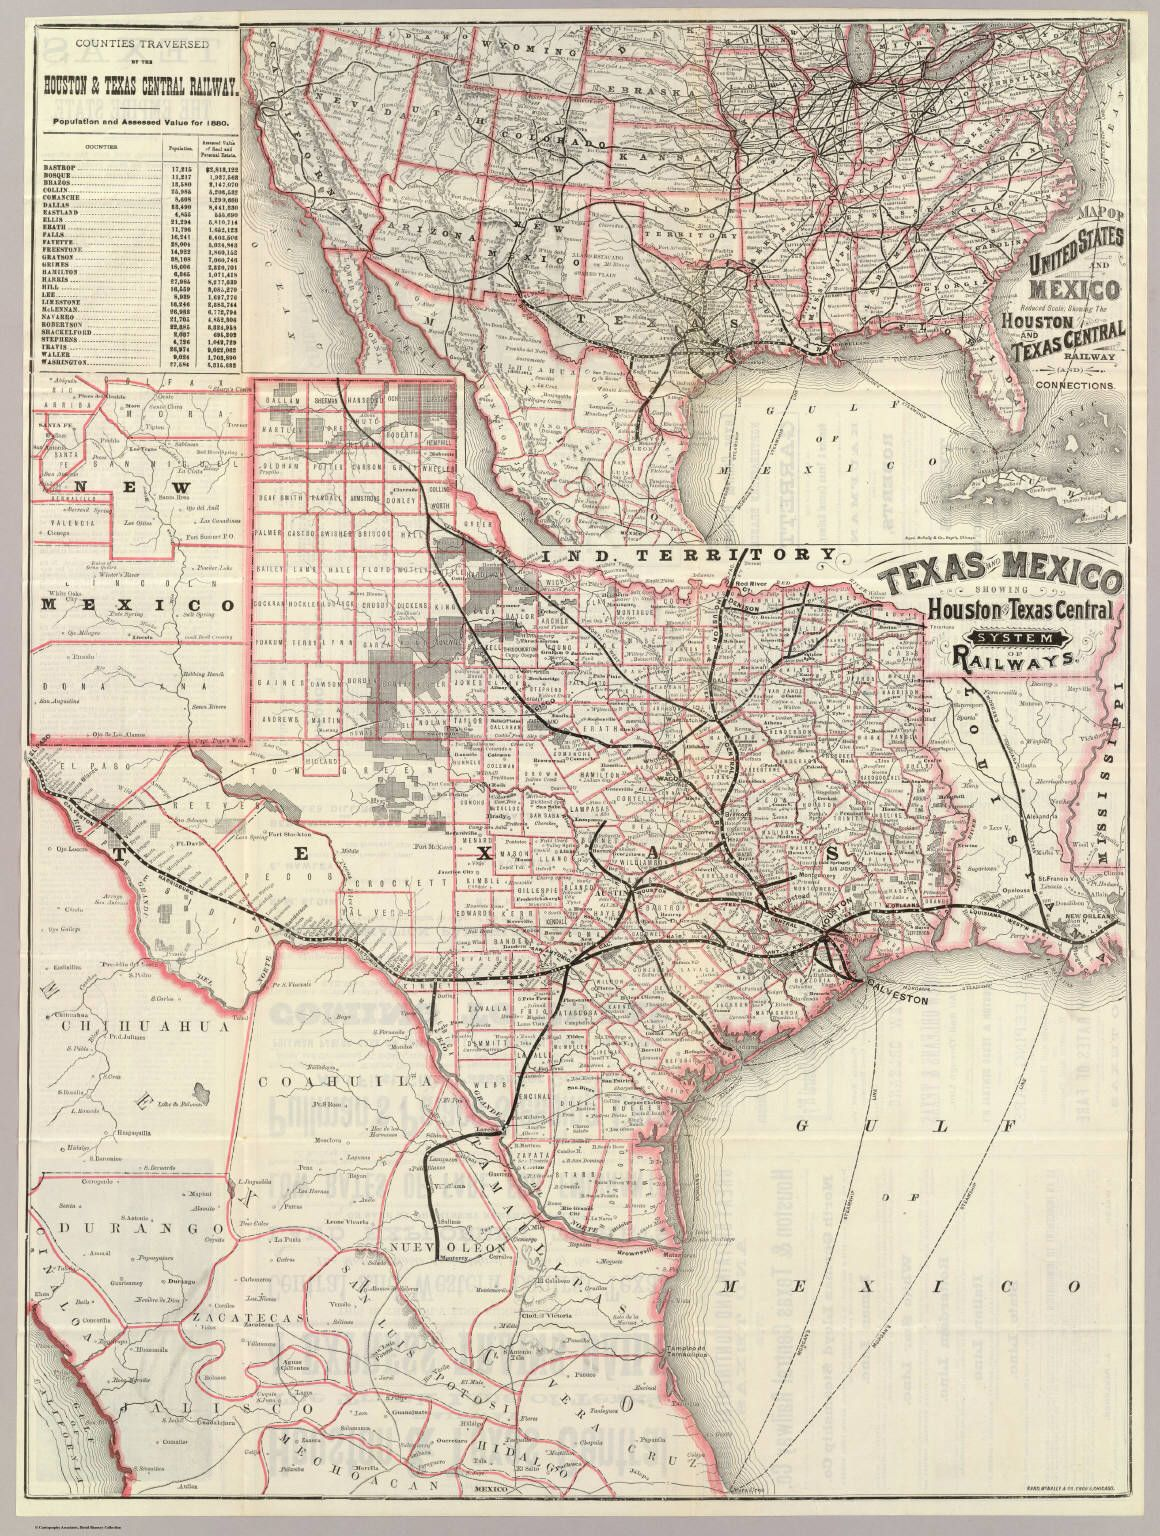 1880 Map Of Texas And Mexico Railway Connections Historic Maps Of